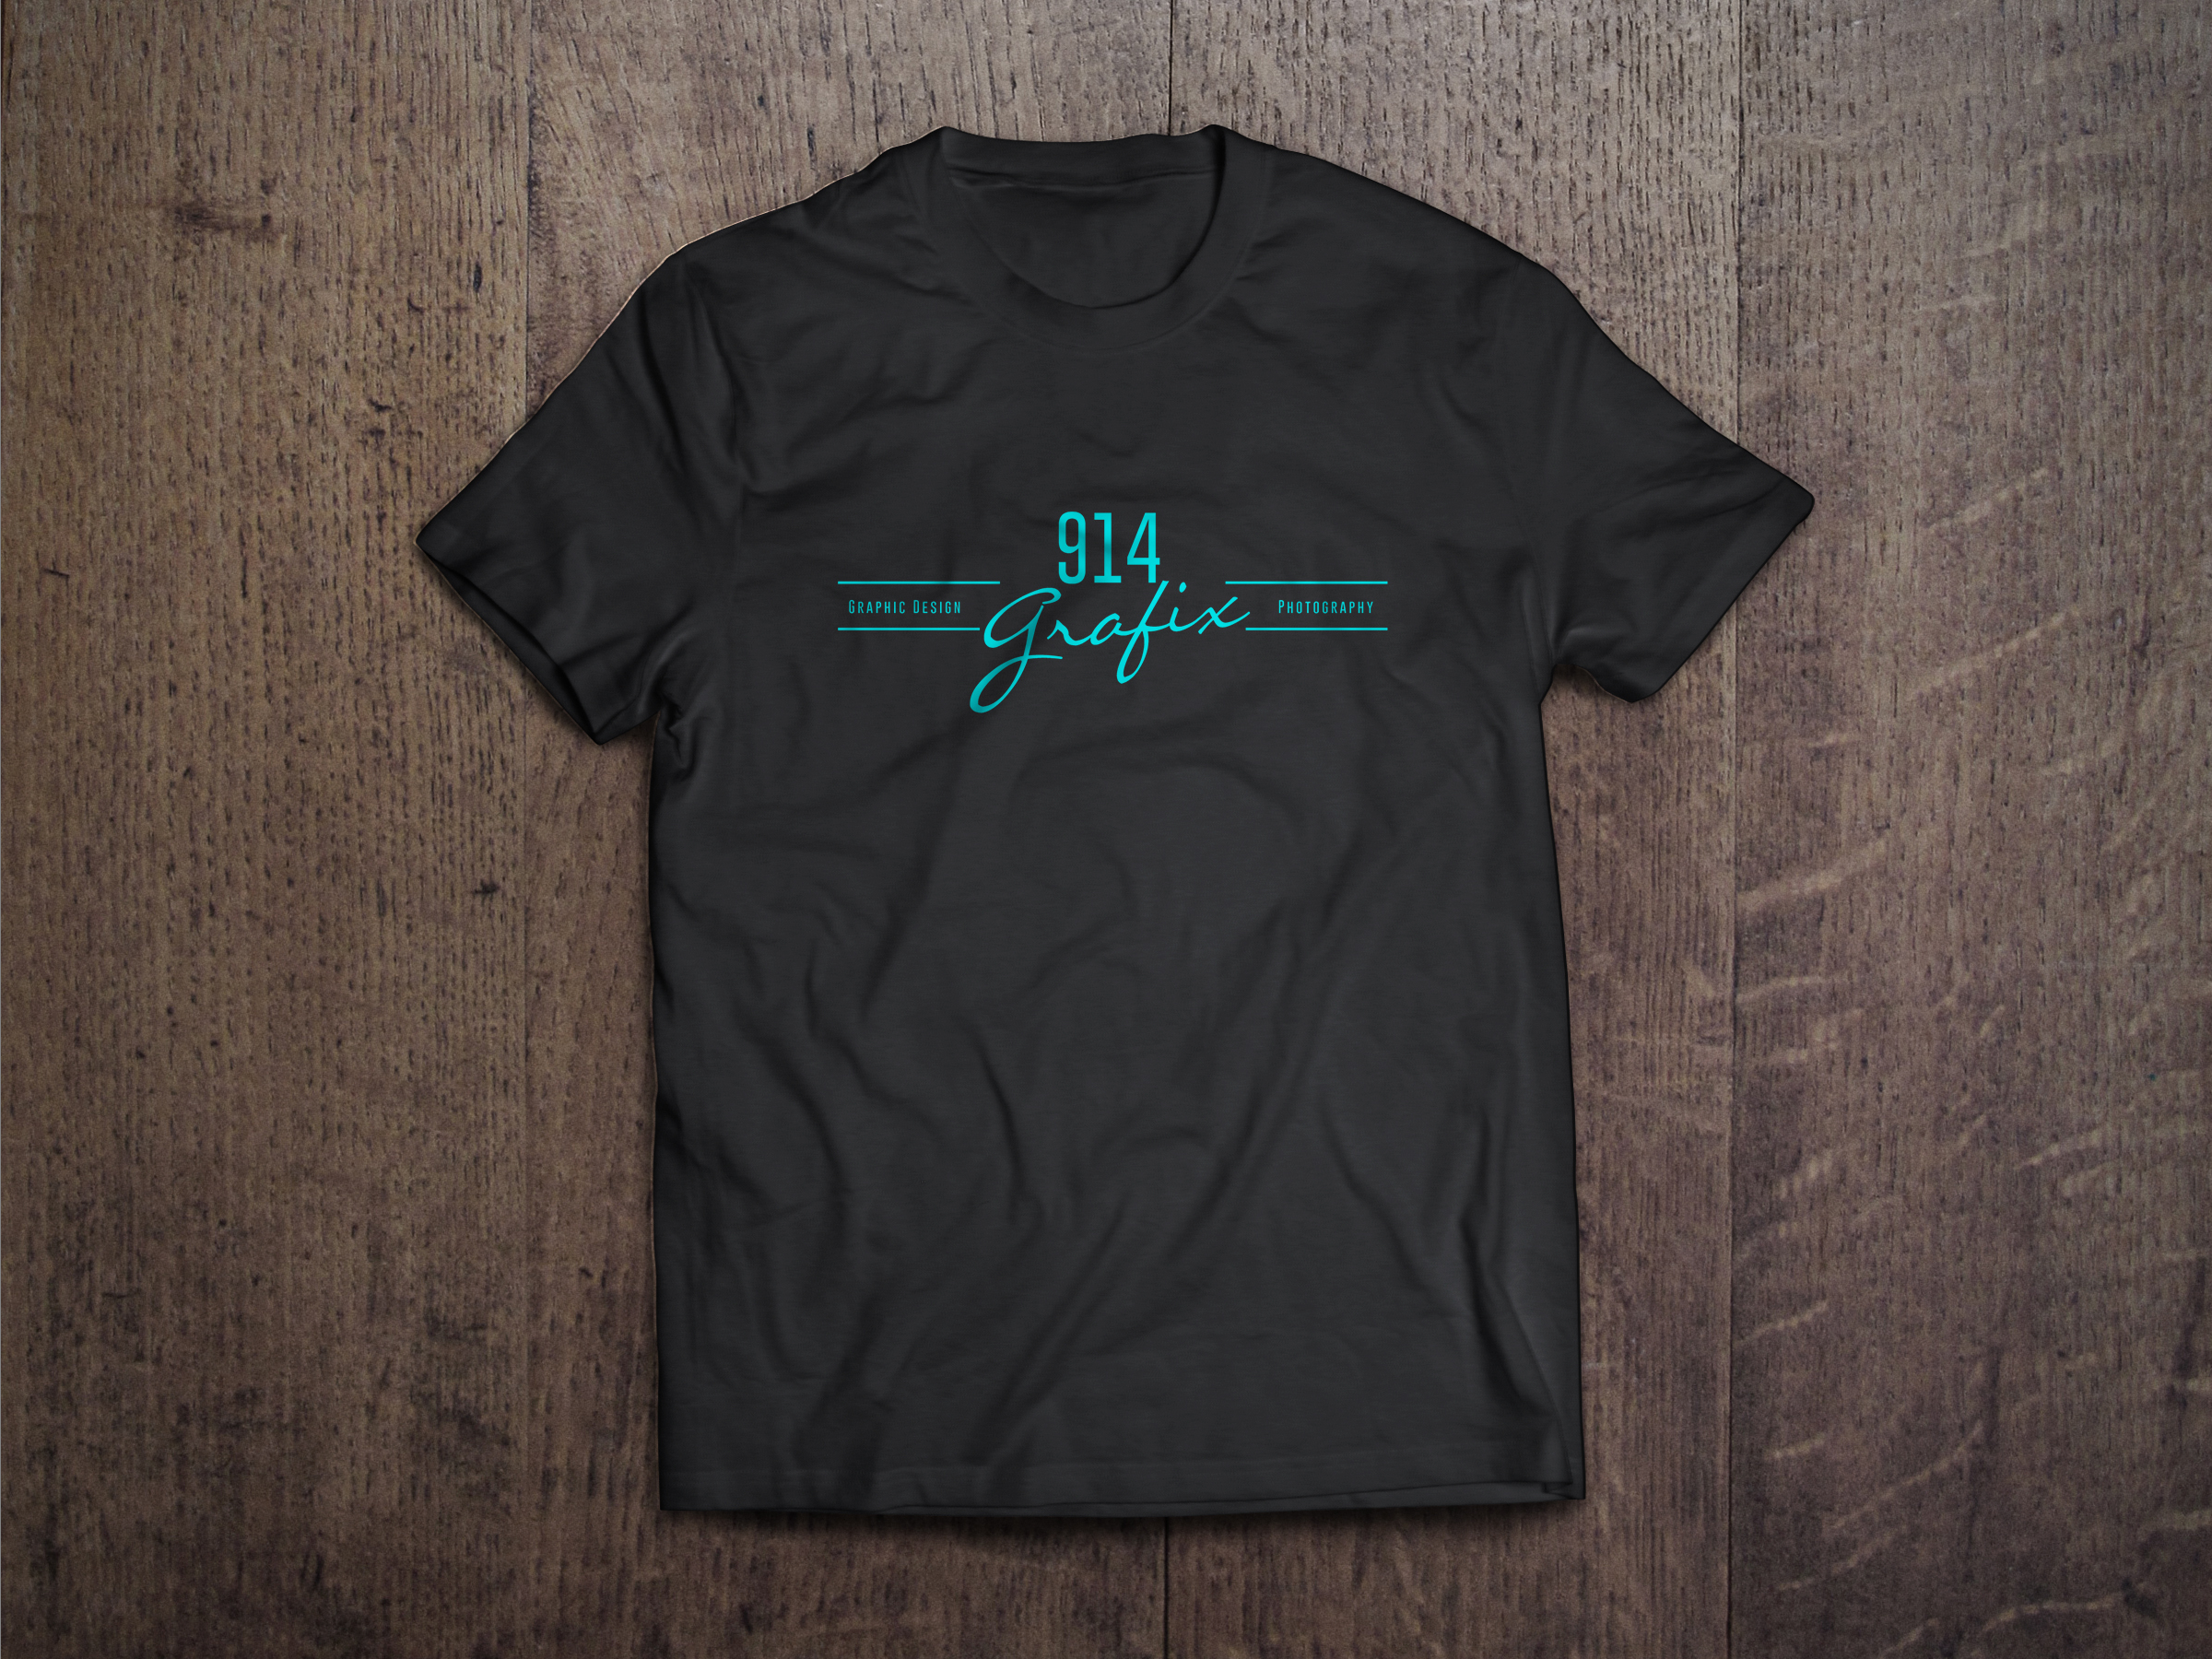 Printed shirts - All shirts are designed by 914 Grafix and Direct To Garment printed by Galloree. They print and drop ship the items for us.